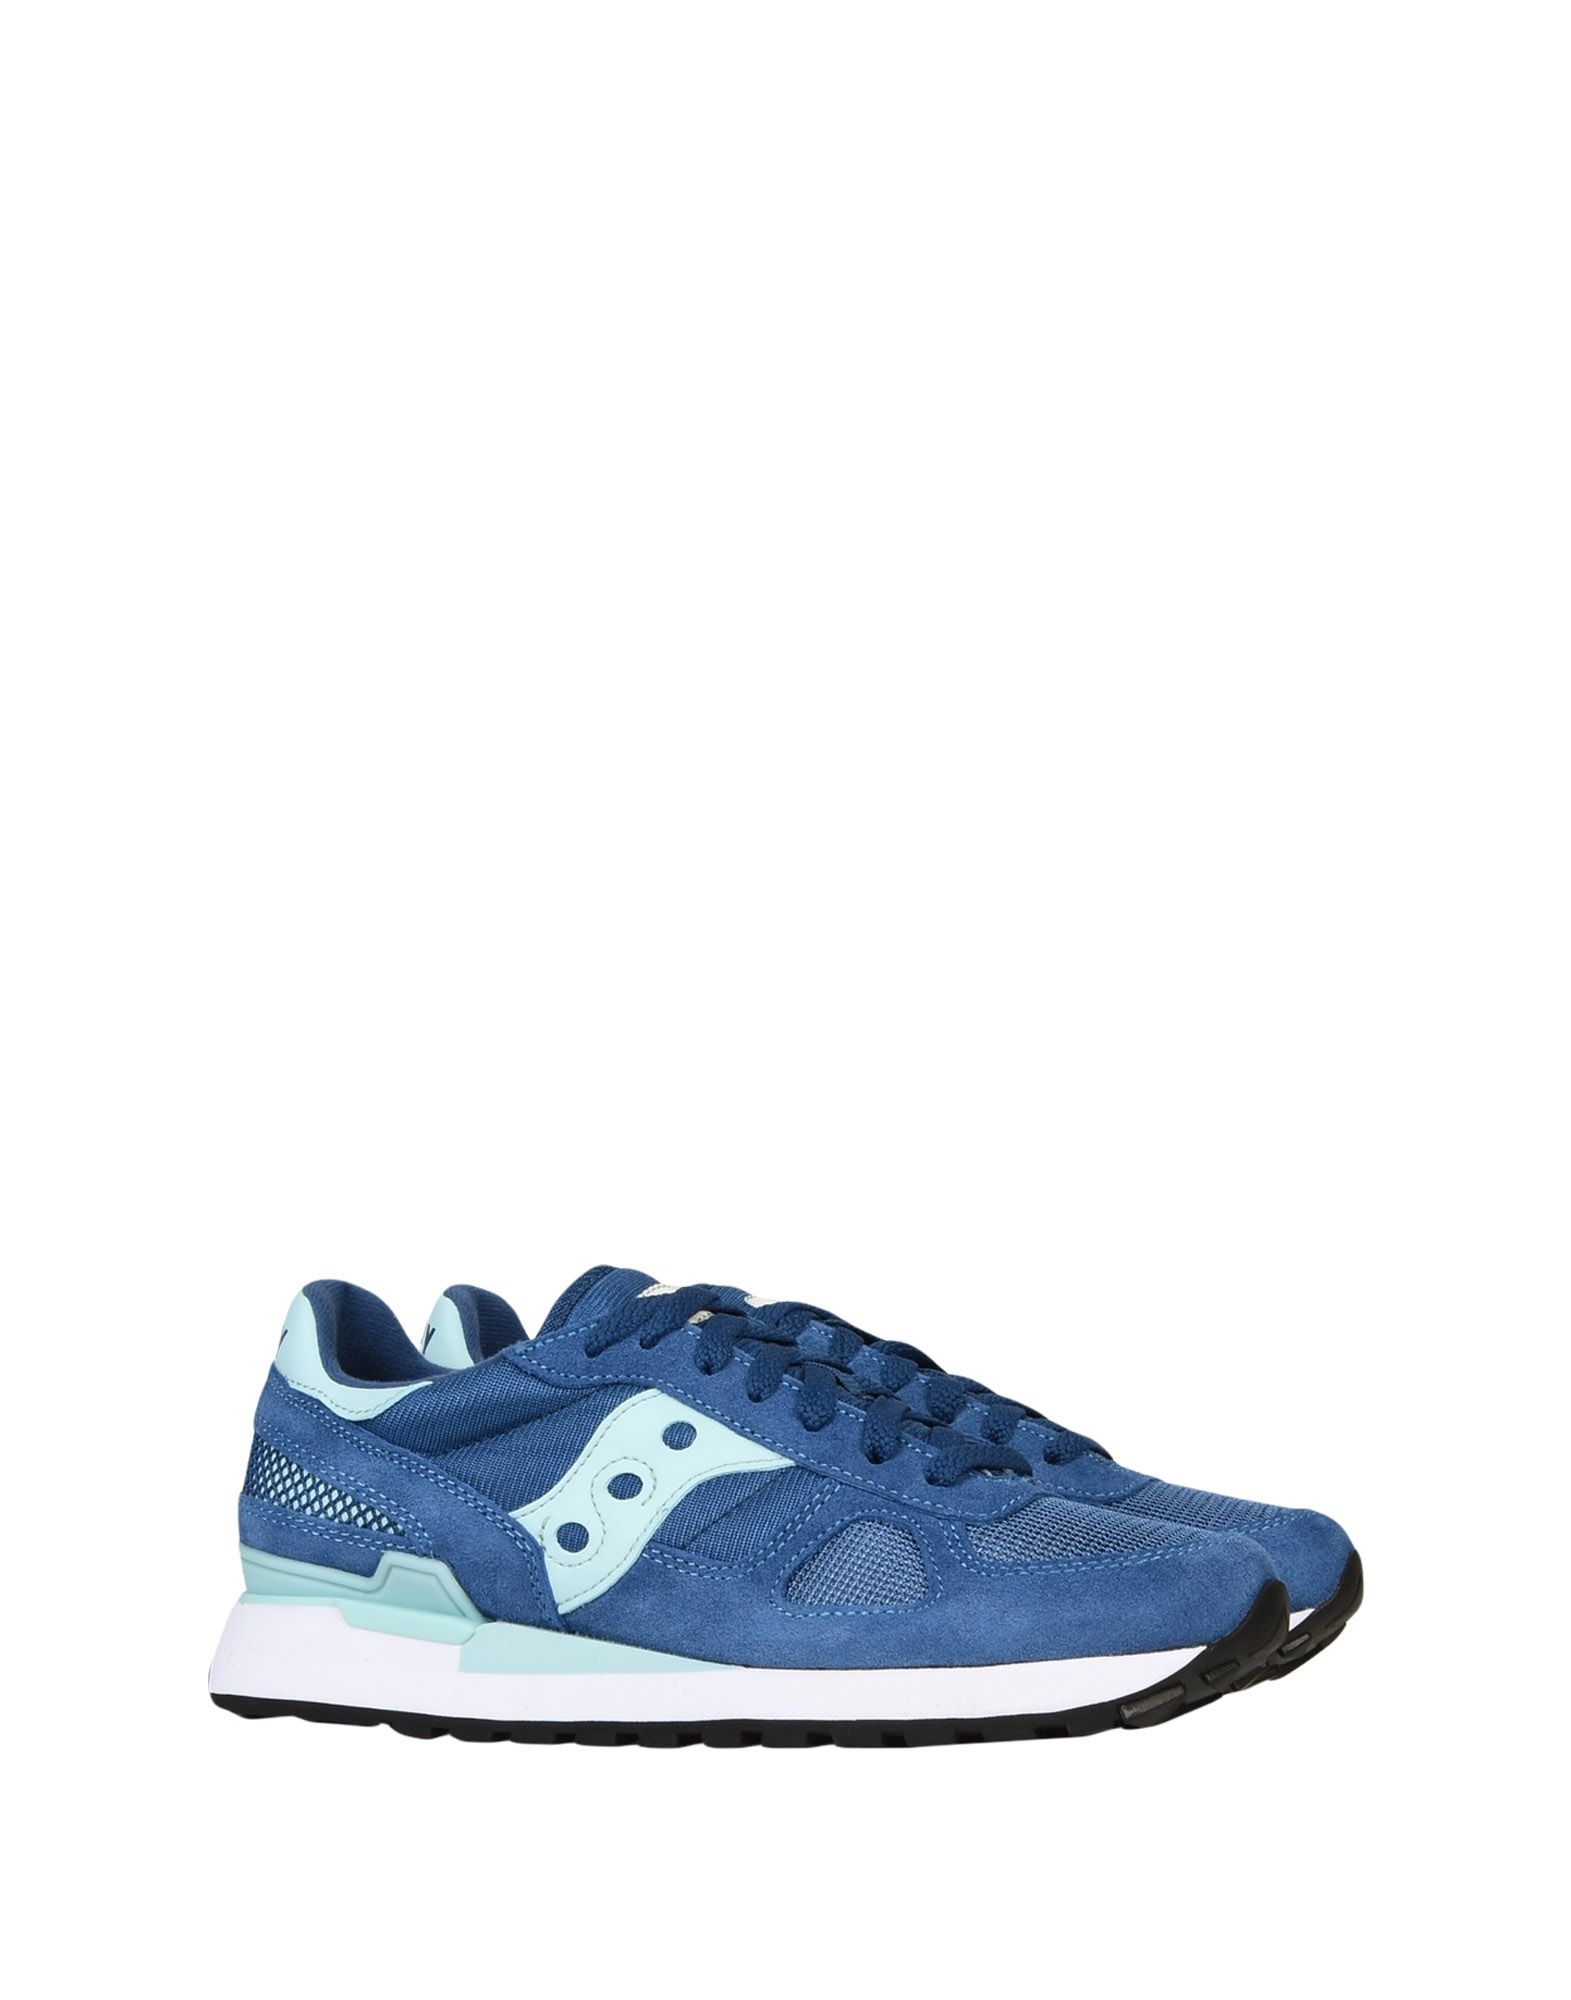 Sneakers Saucony Shadow Original W - Femme - Sneakers Saucony sur